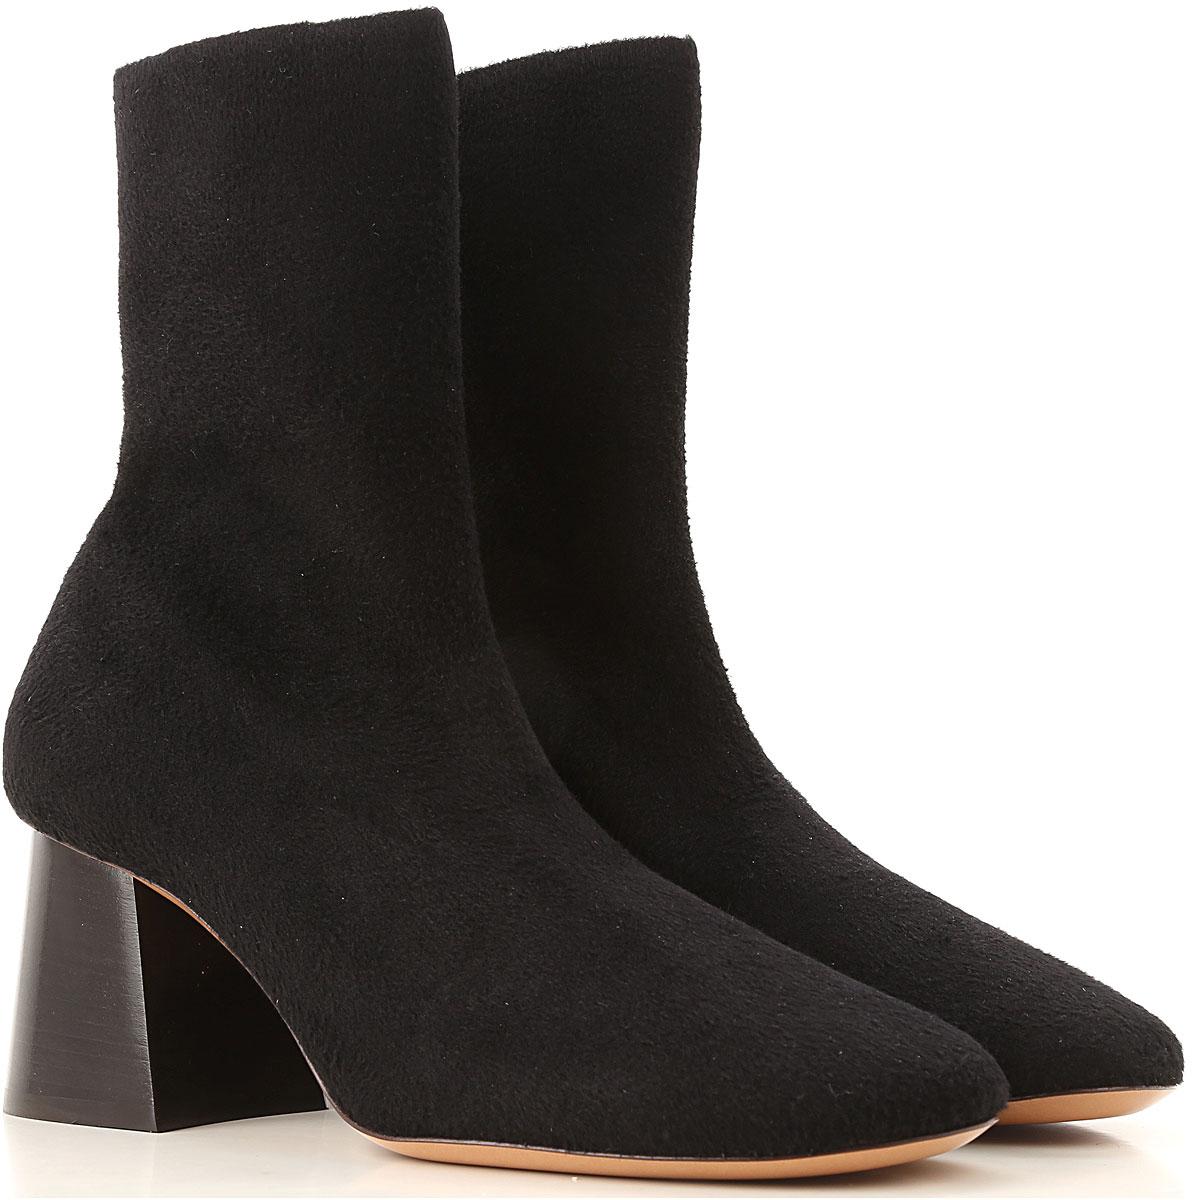 Image of Celine Boots for Women, Booties, Black, Fabric, 2017, 10 7 9